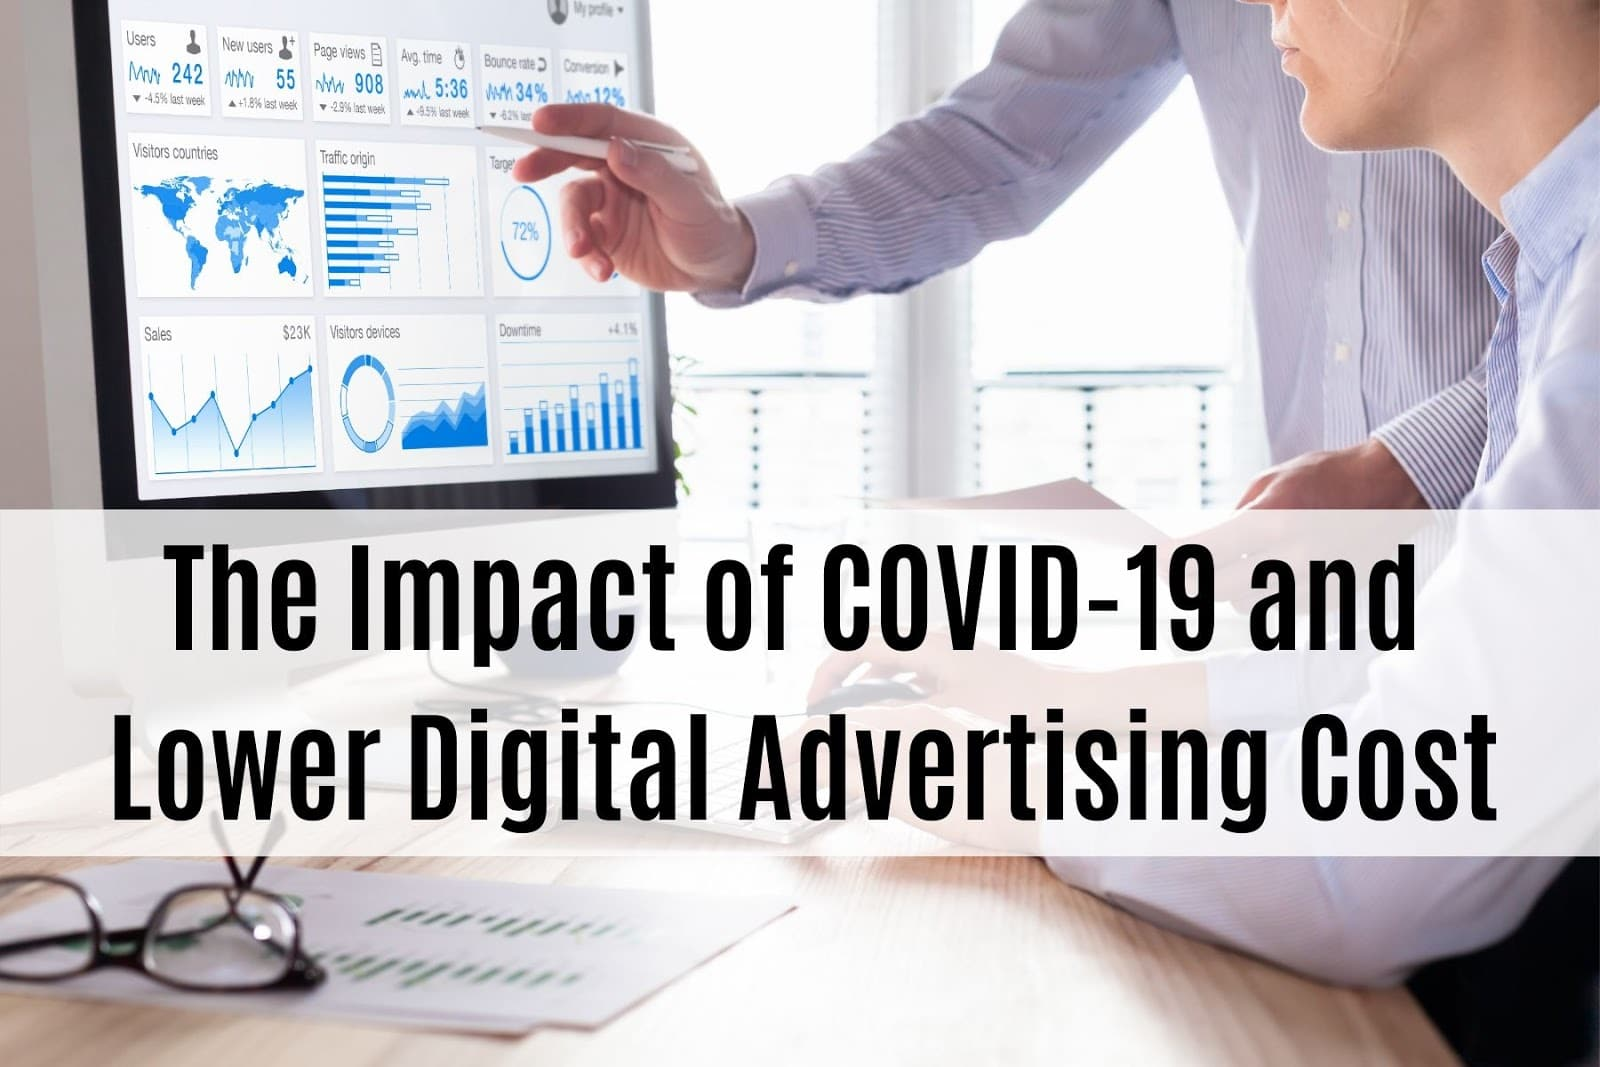 The Impact of COVID-19 and Lower Digital Advertising Cost